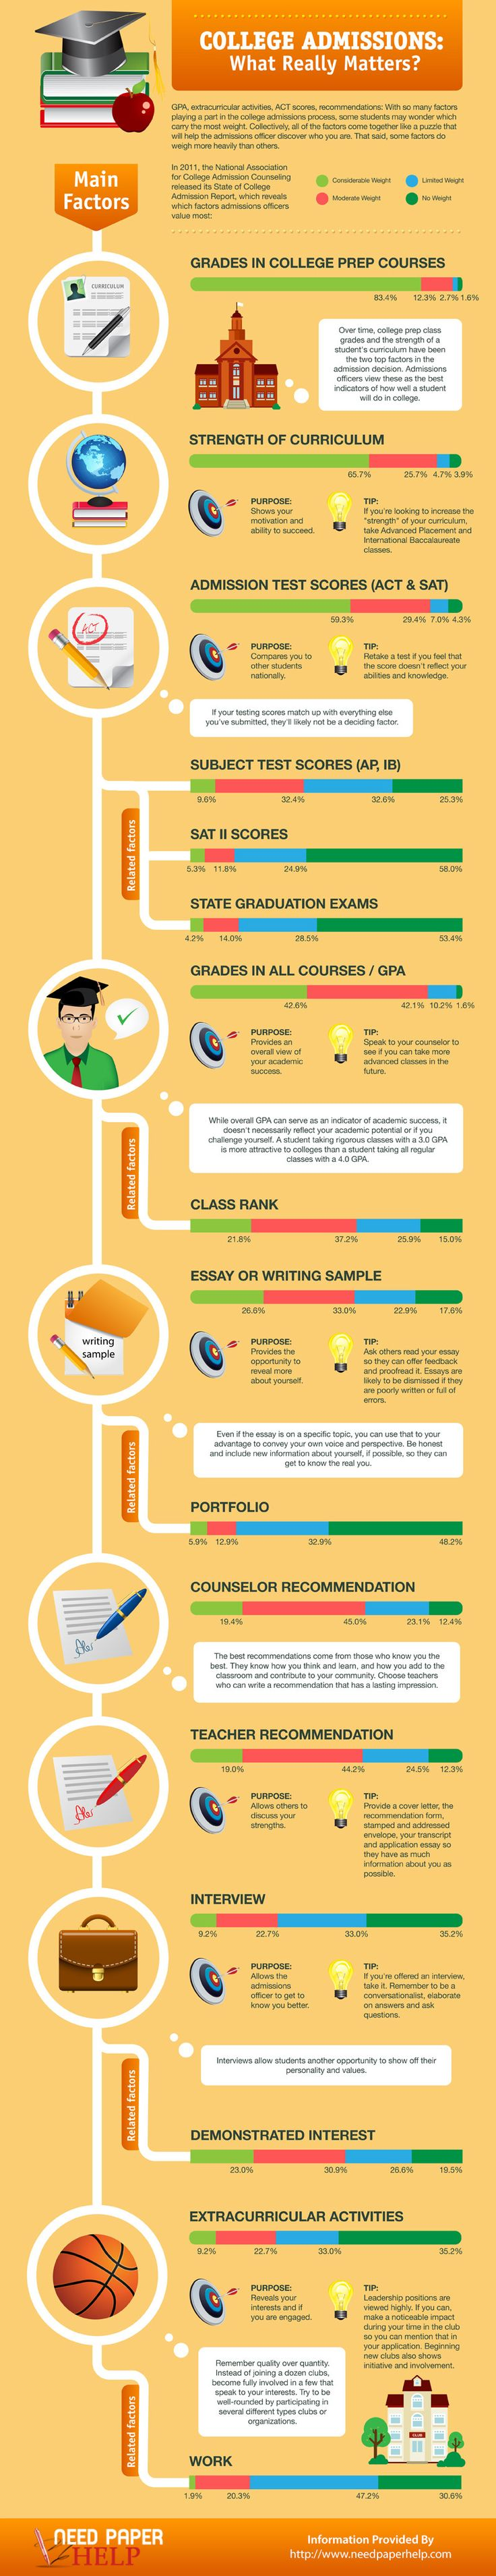 College Admissions What Really Matters? #infographic #College #Education